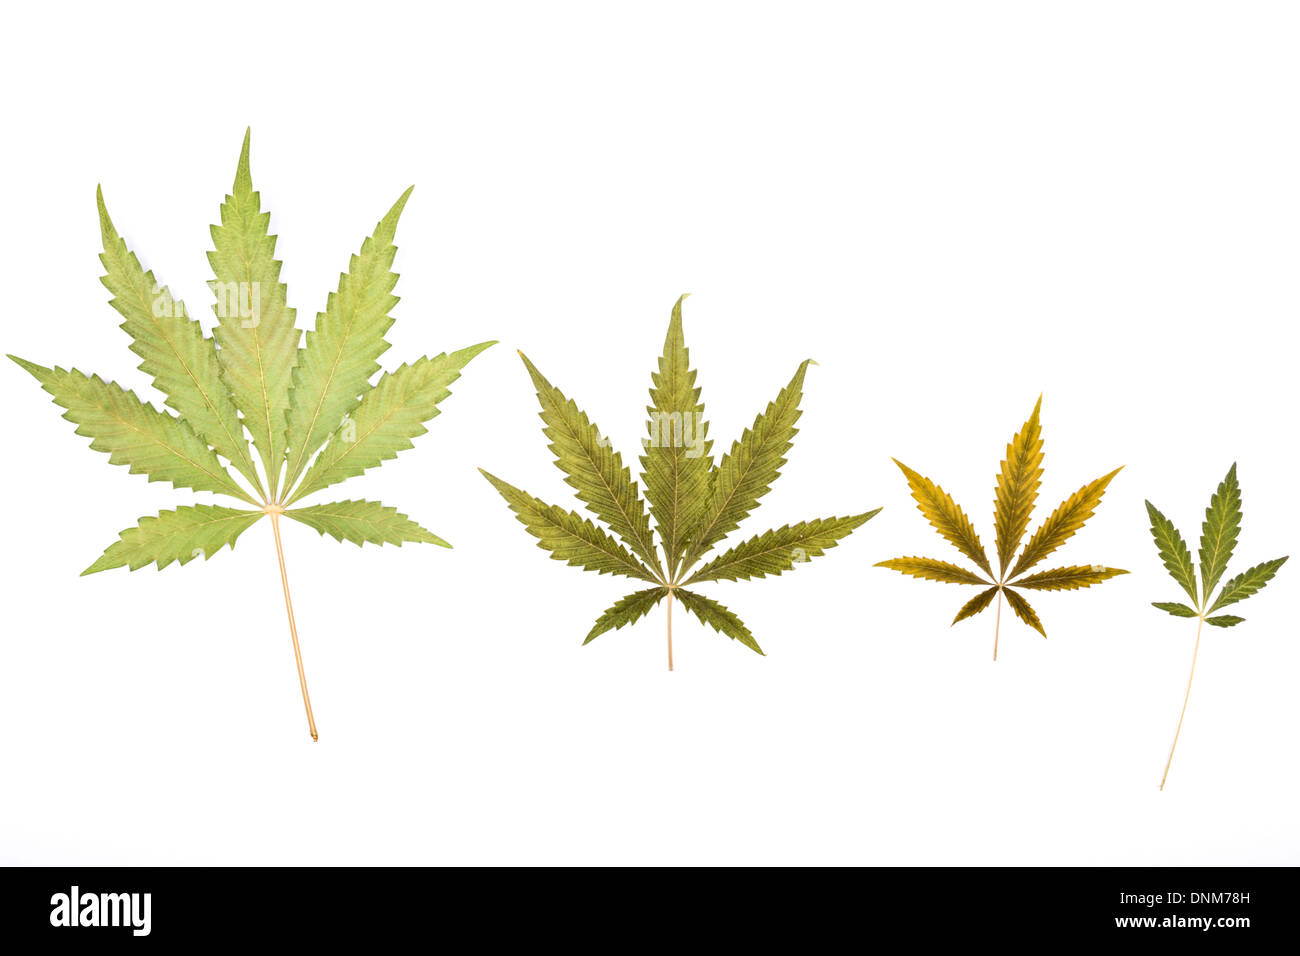 Cannabis leaves of different sizes and colours. - Stock Image